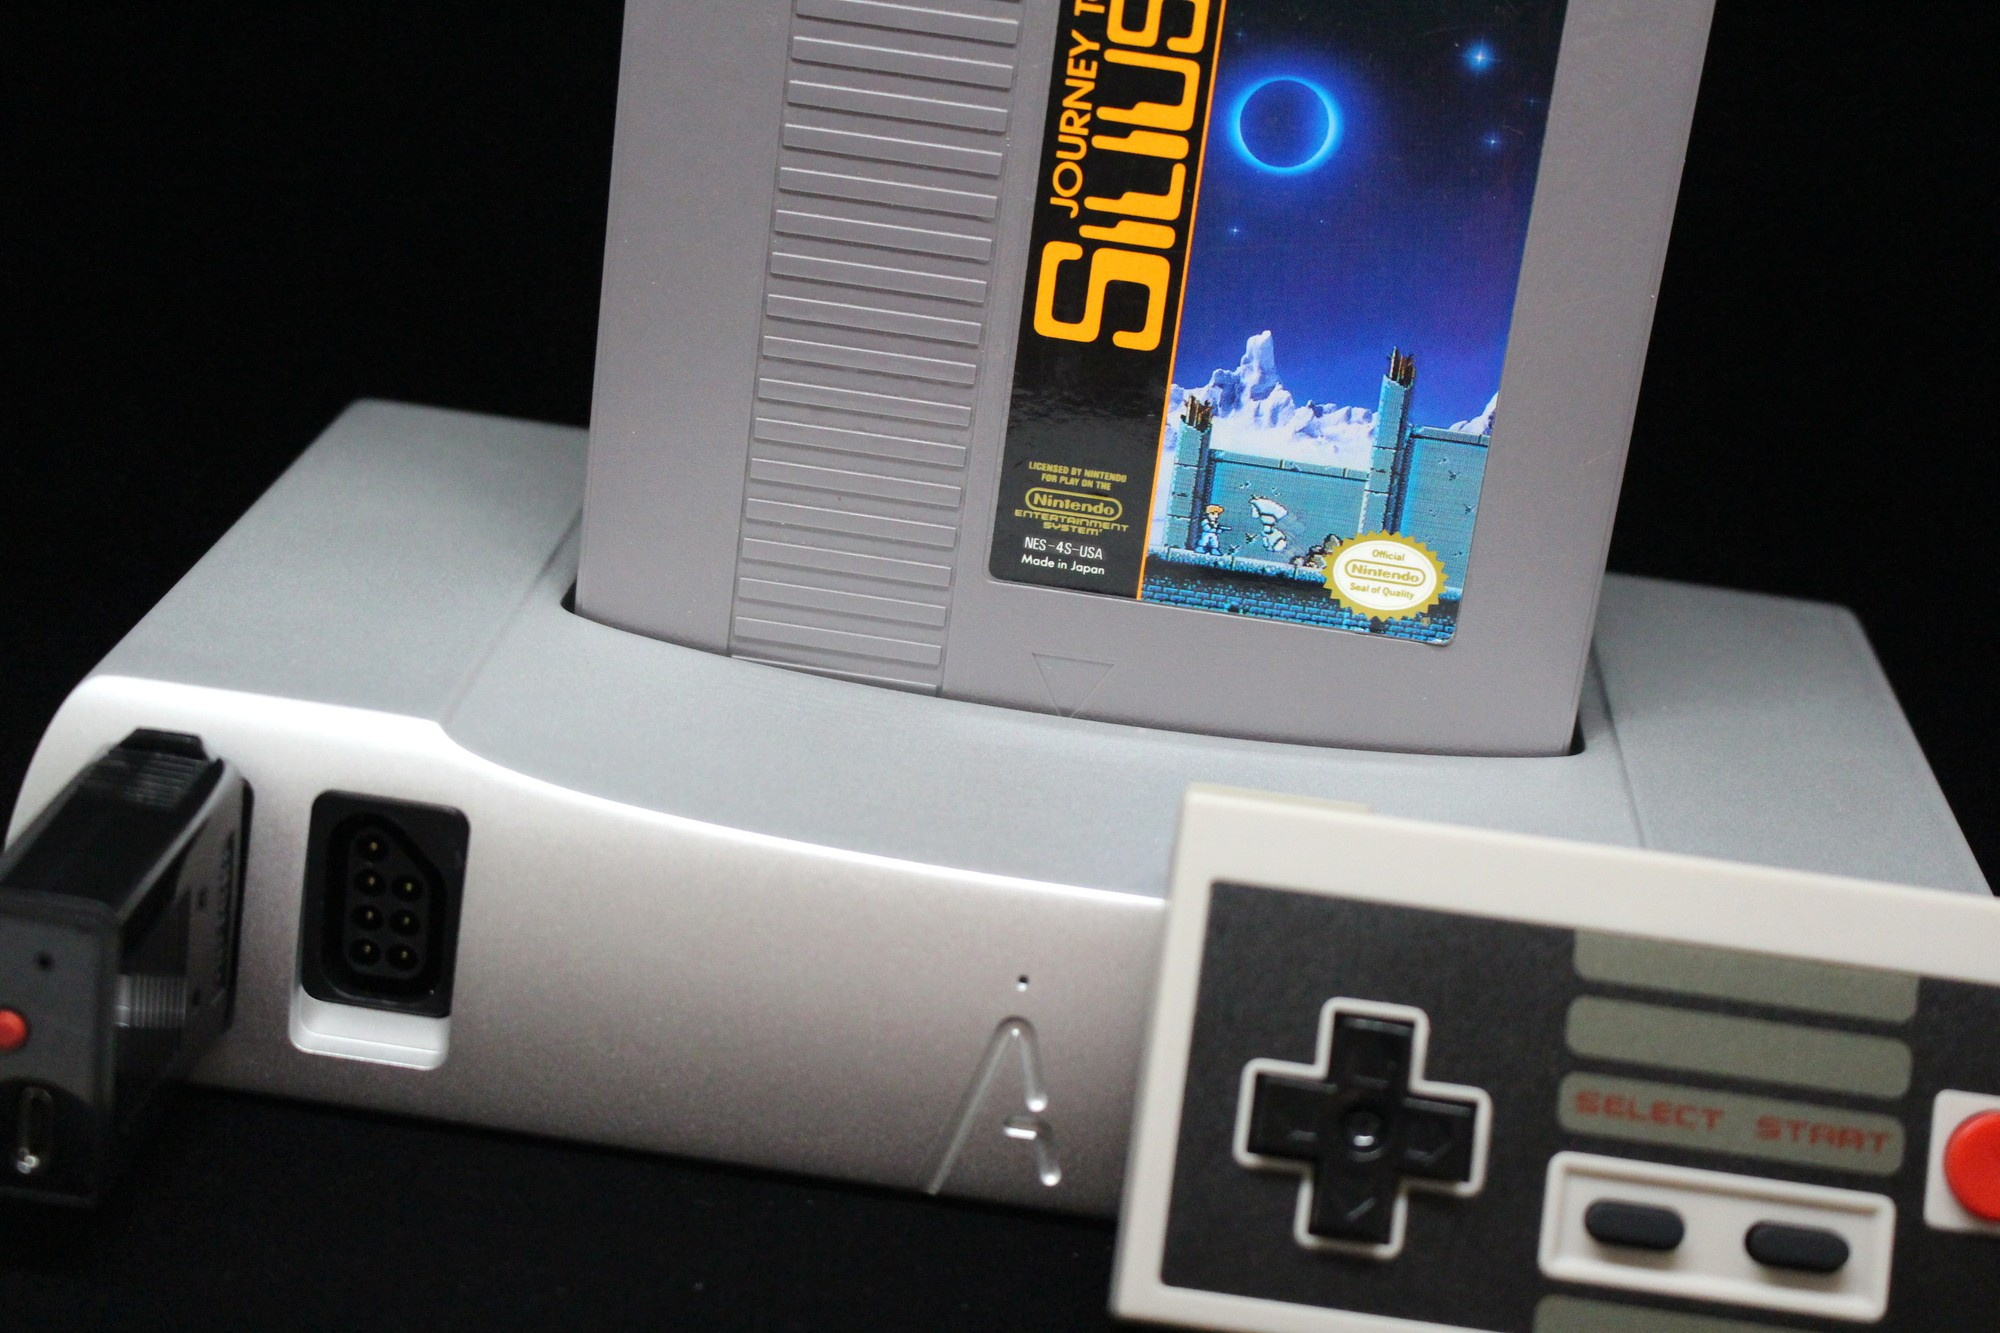 Hardware Review: The Analogue NT Mini Isn't Just The Best